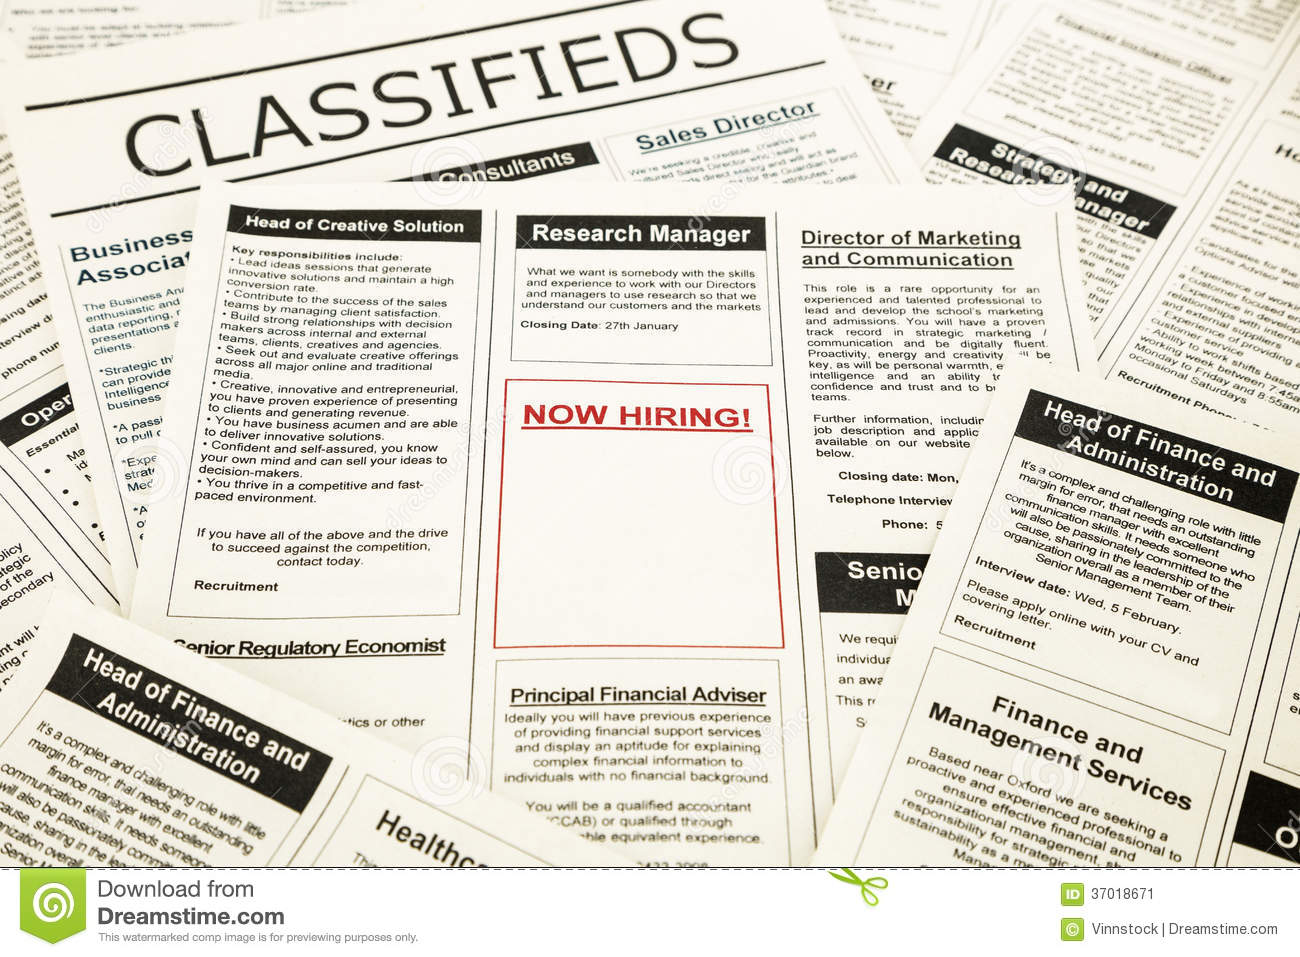 newspaper now classifieds